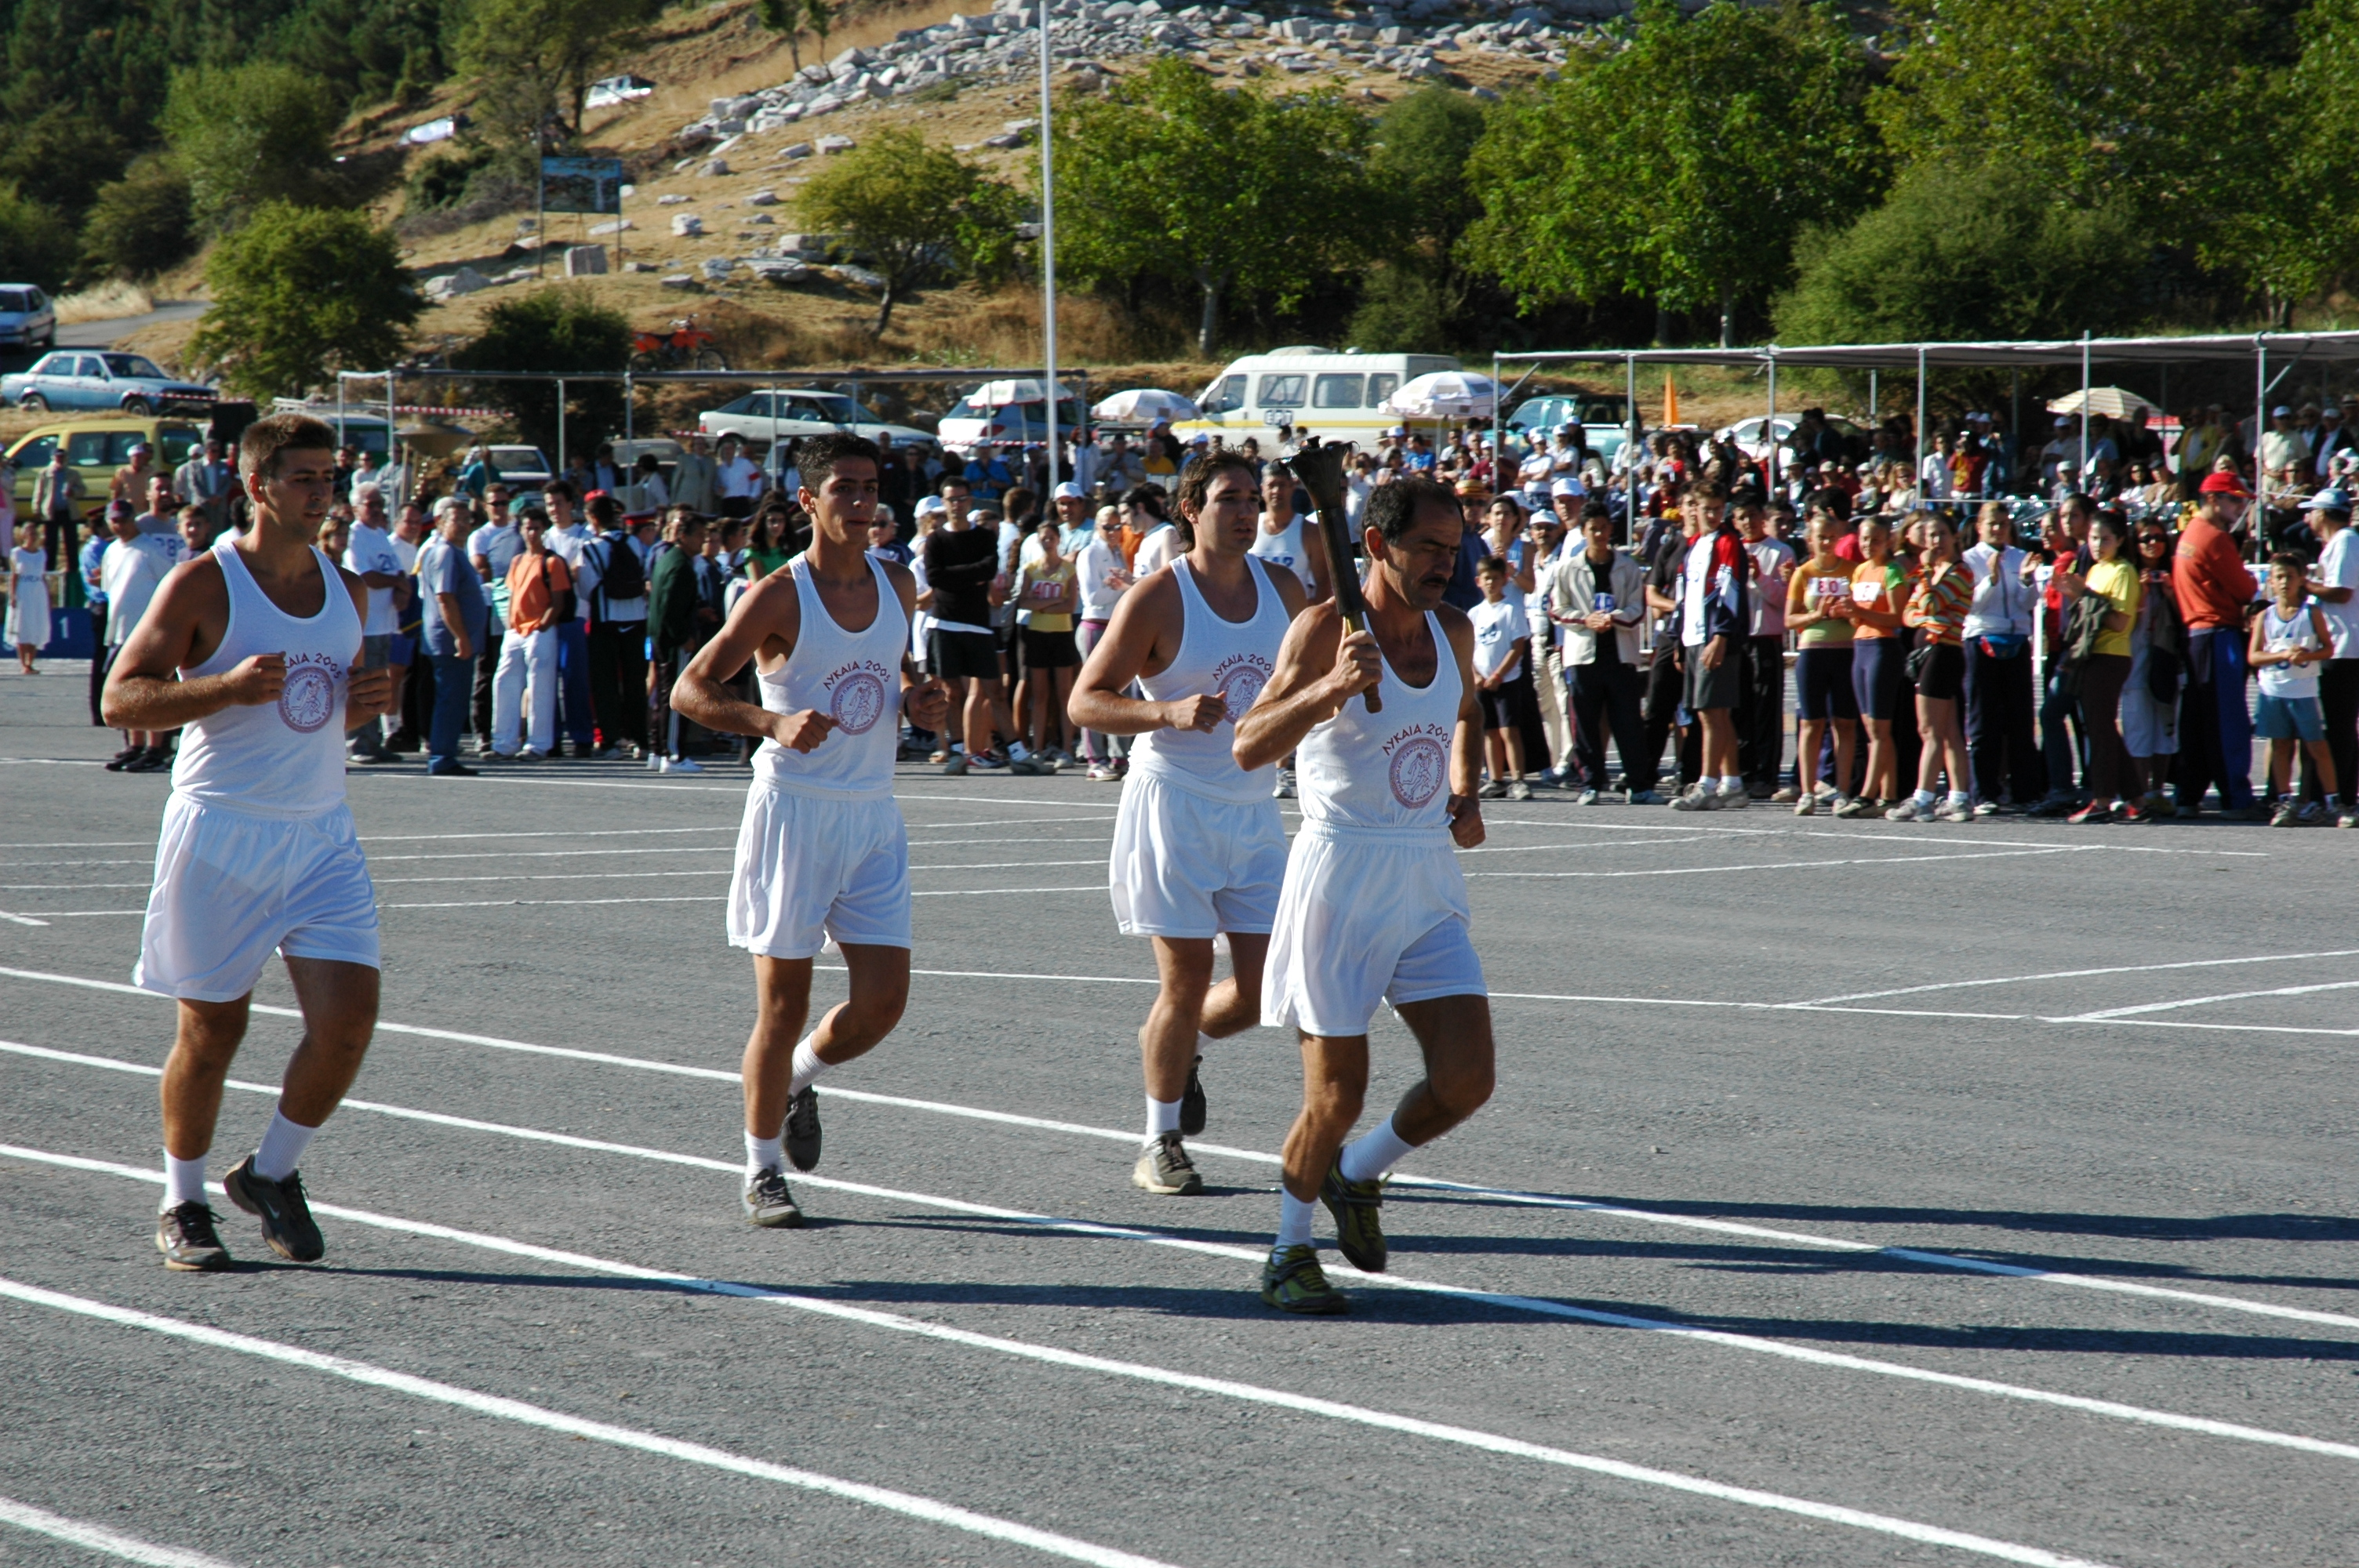 Flame brought to the track below the altar by Yanis Kouros (2005 photo)